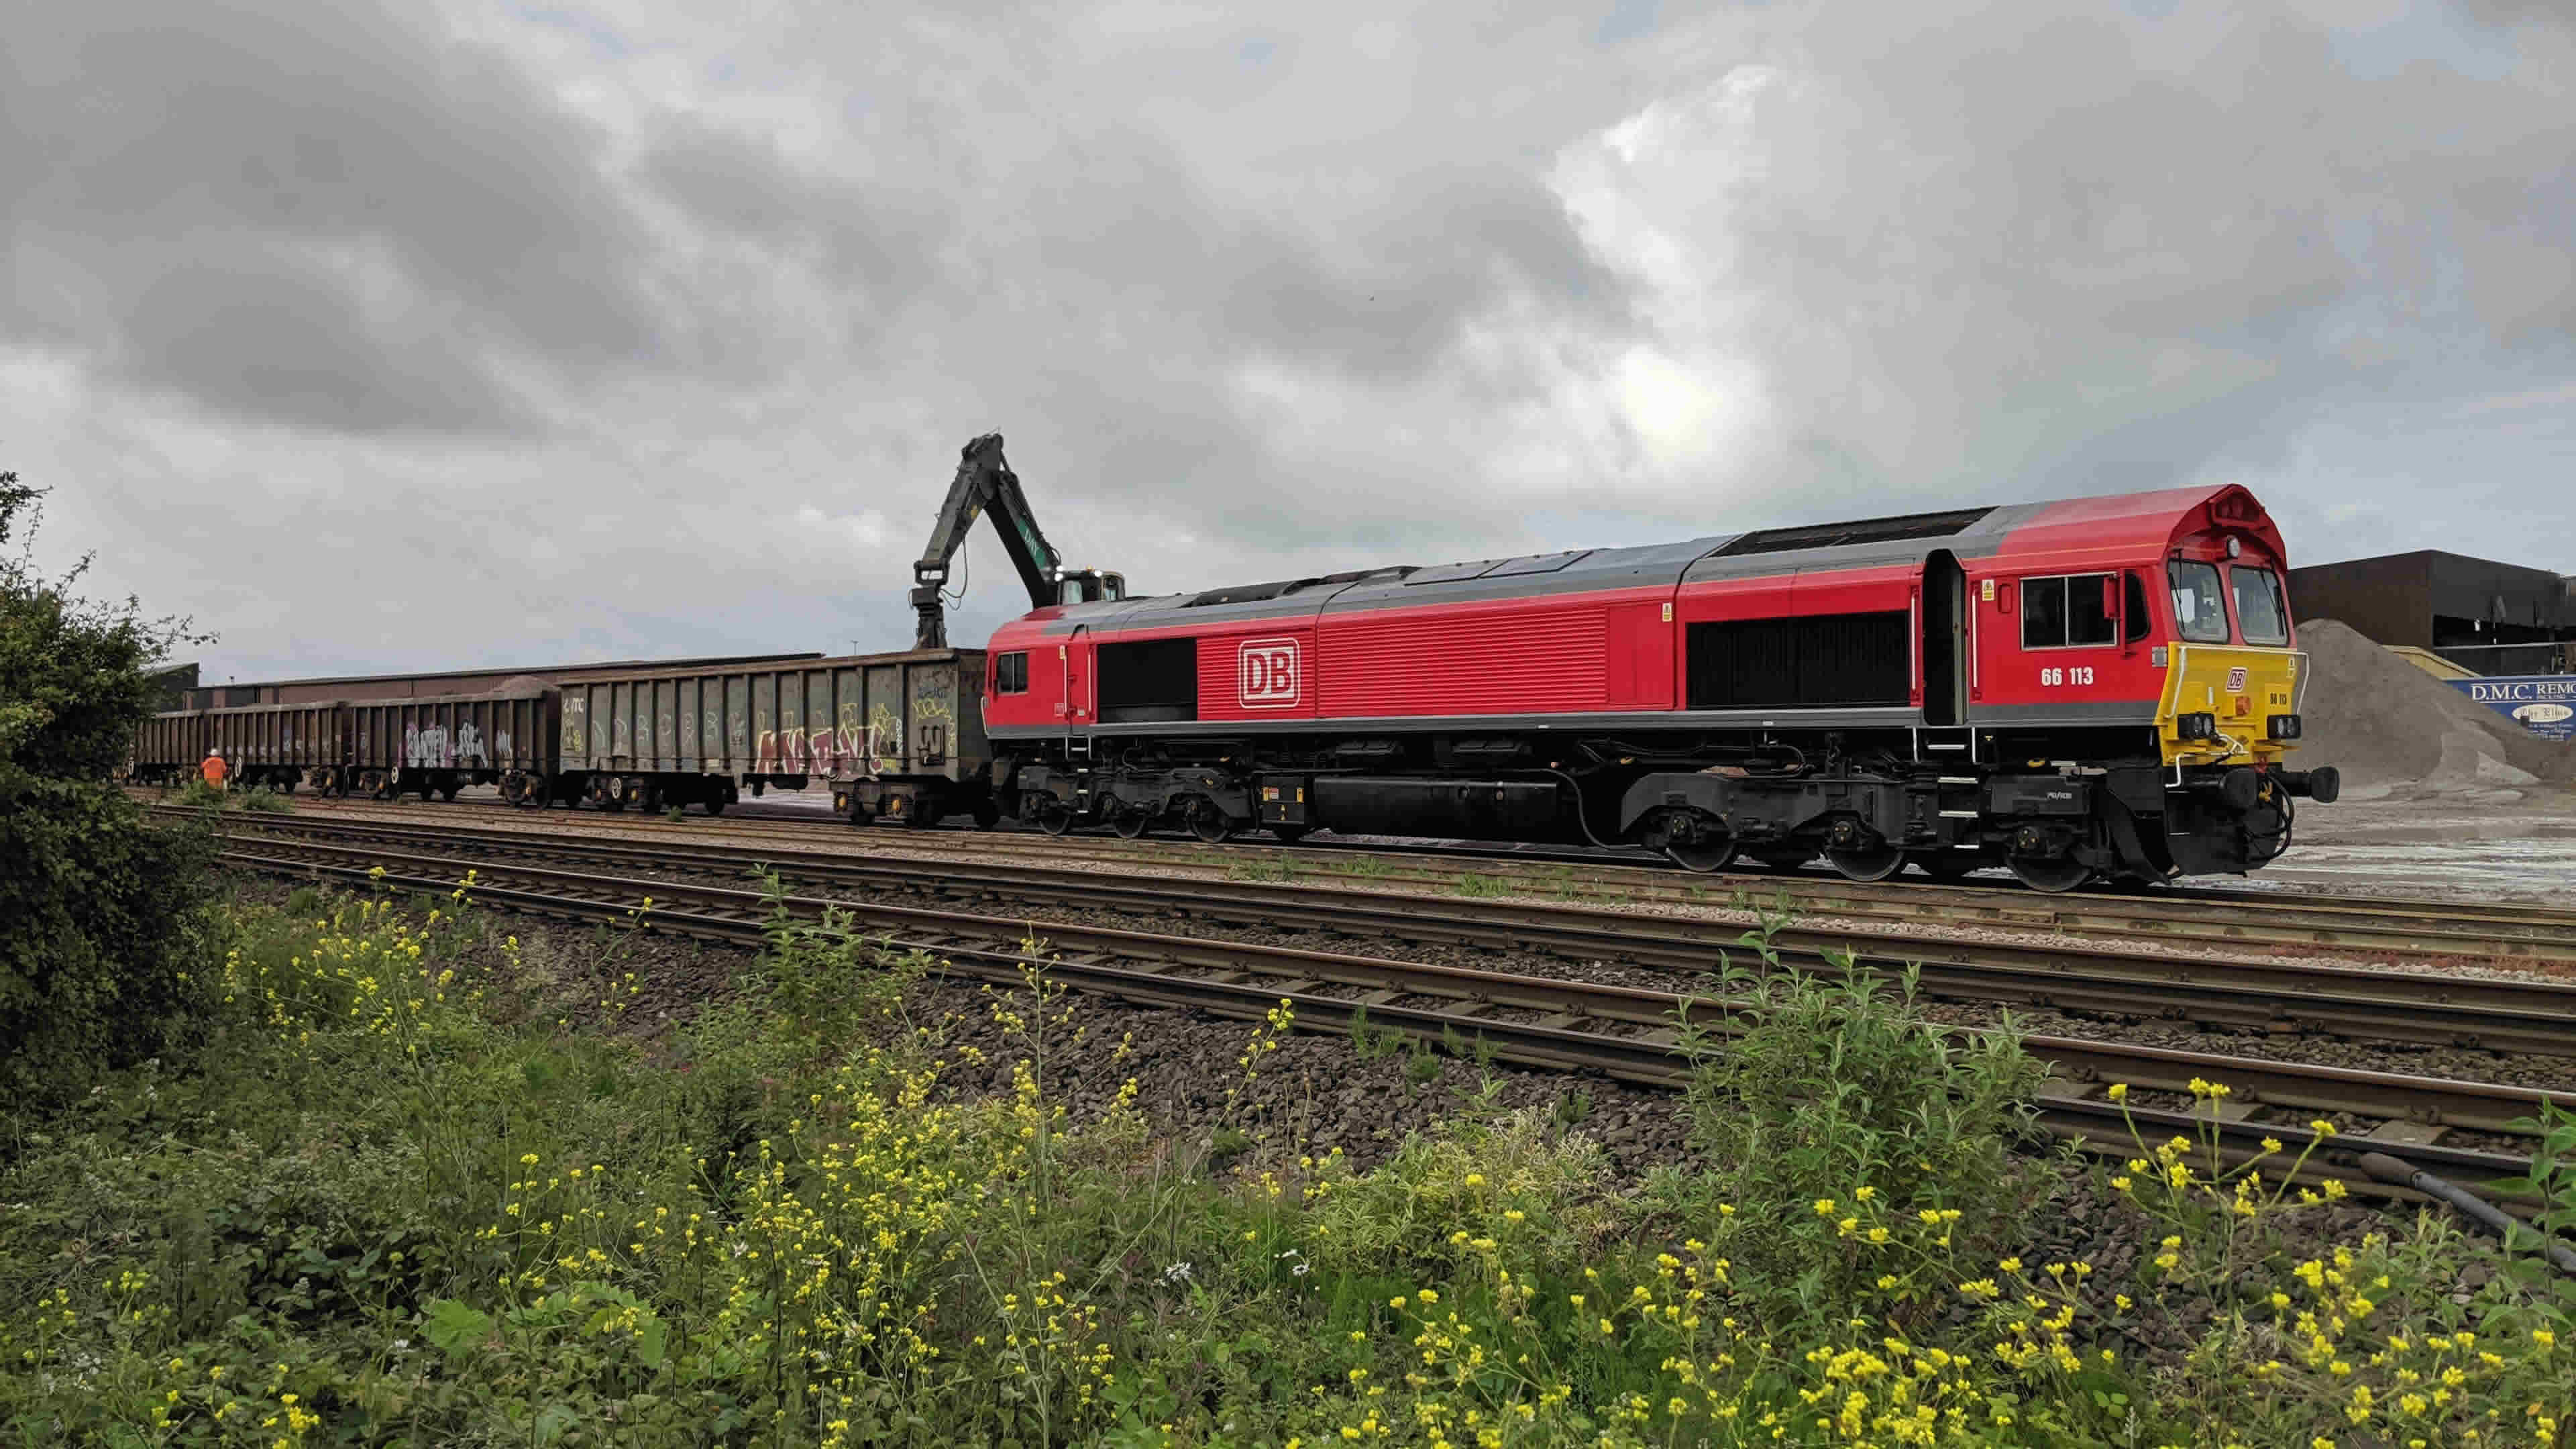 class 66 DB red livery